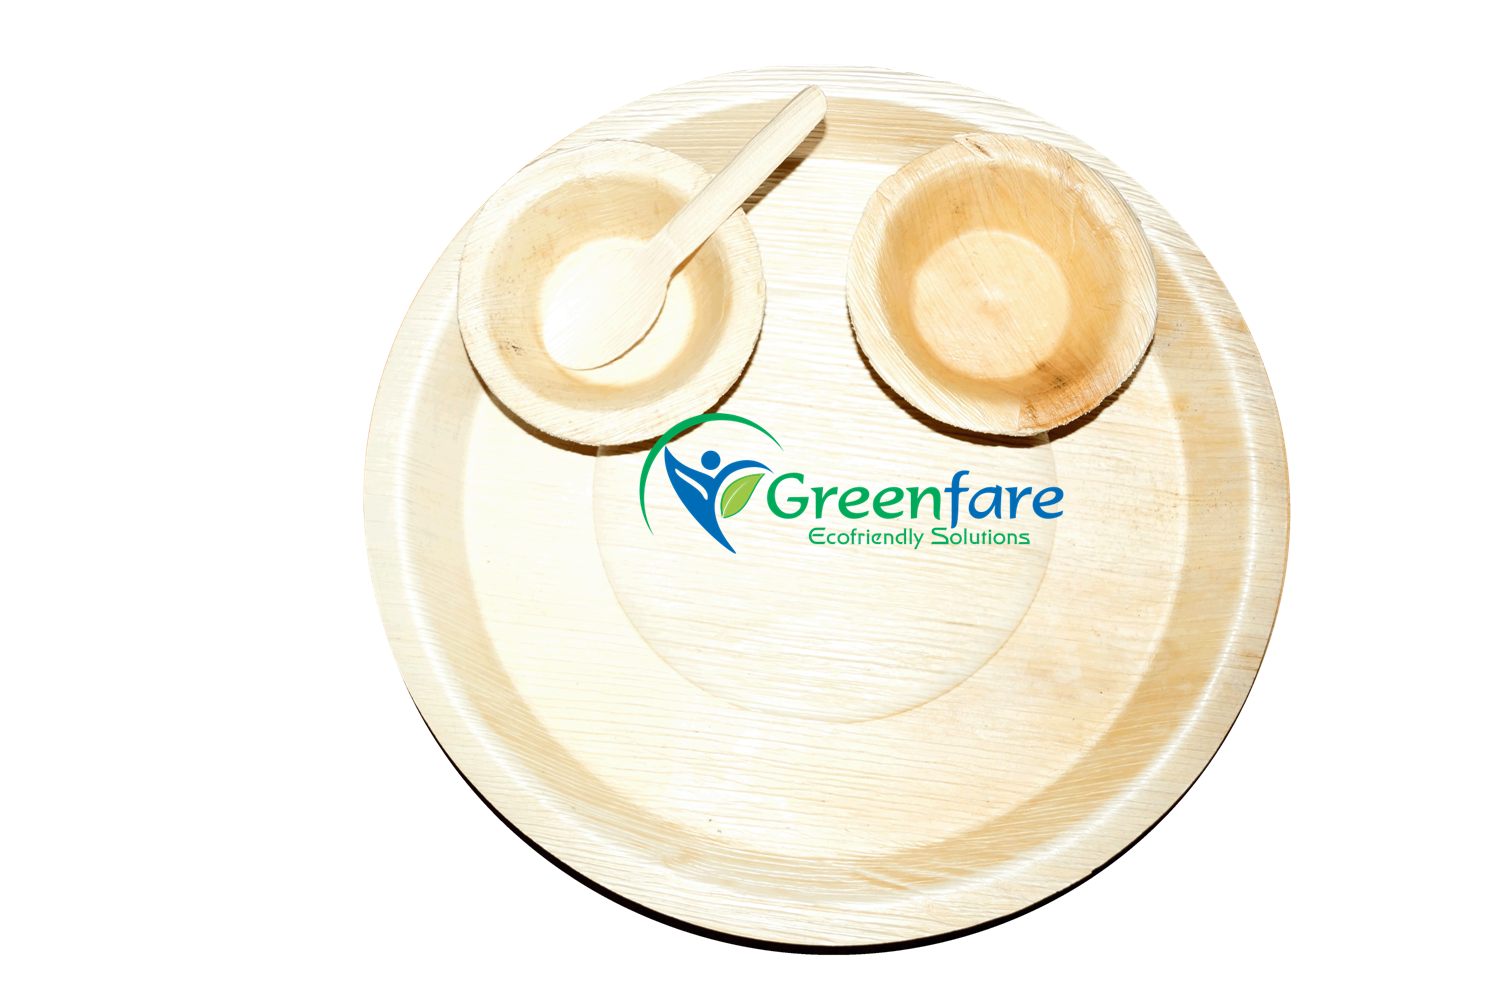 Greenfare Ecofriendly Areca Leaf Disposable Plates and bowls